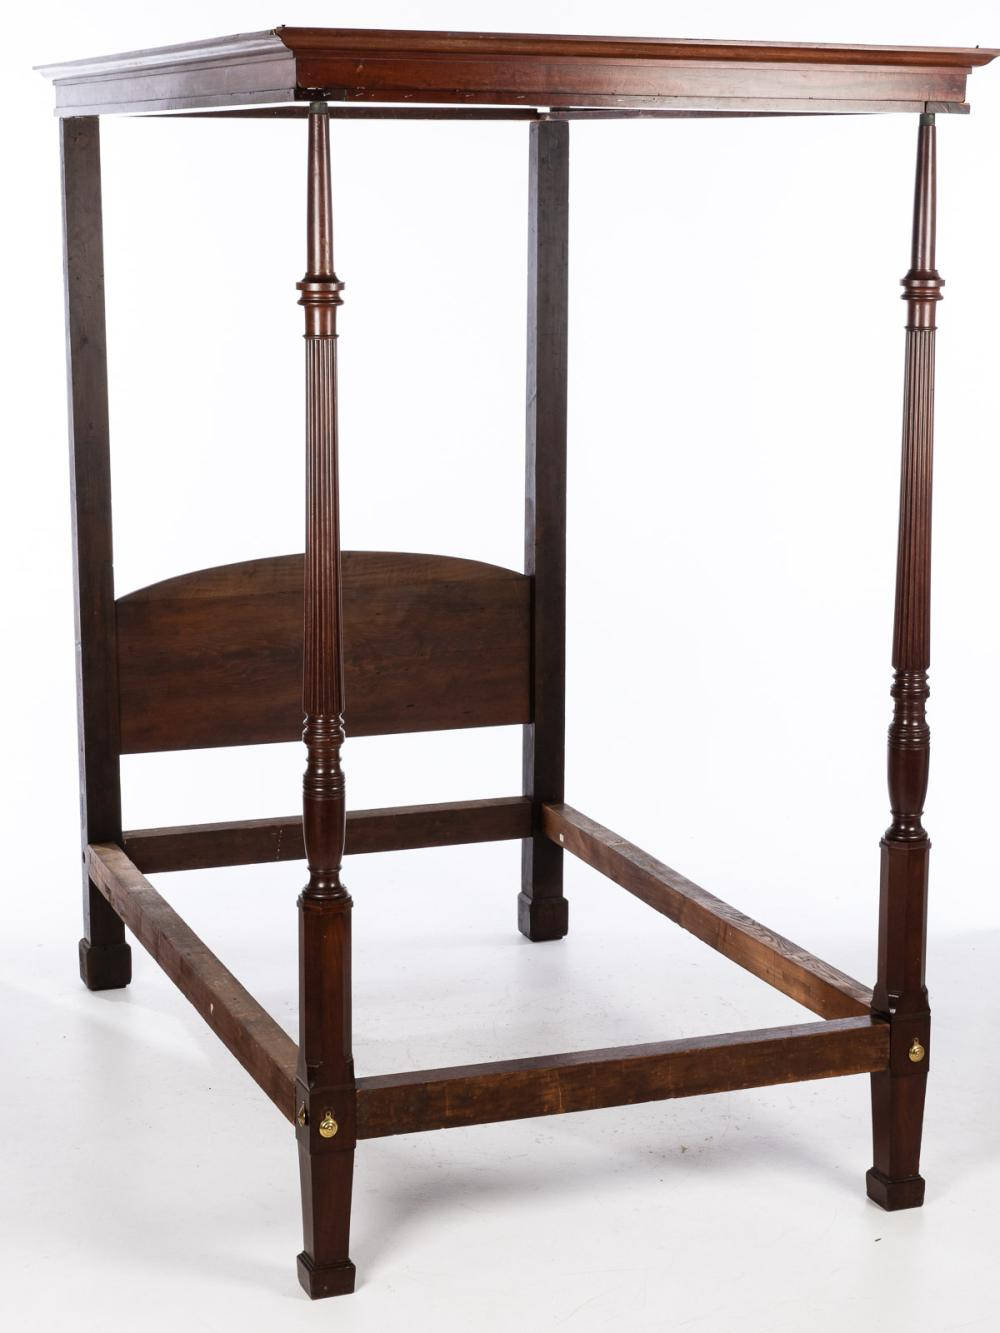 GEORGE III MAHOGANY FOUR POSTER BED, C. 1800